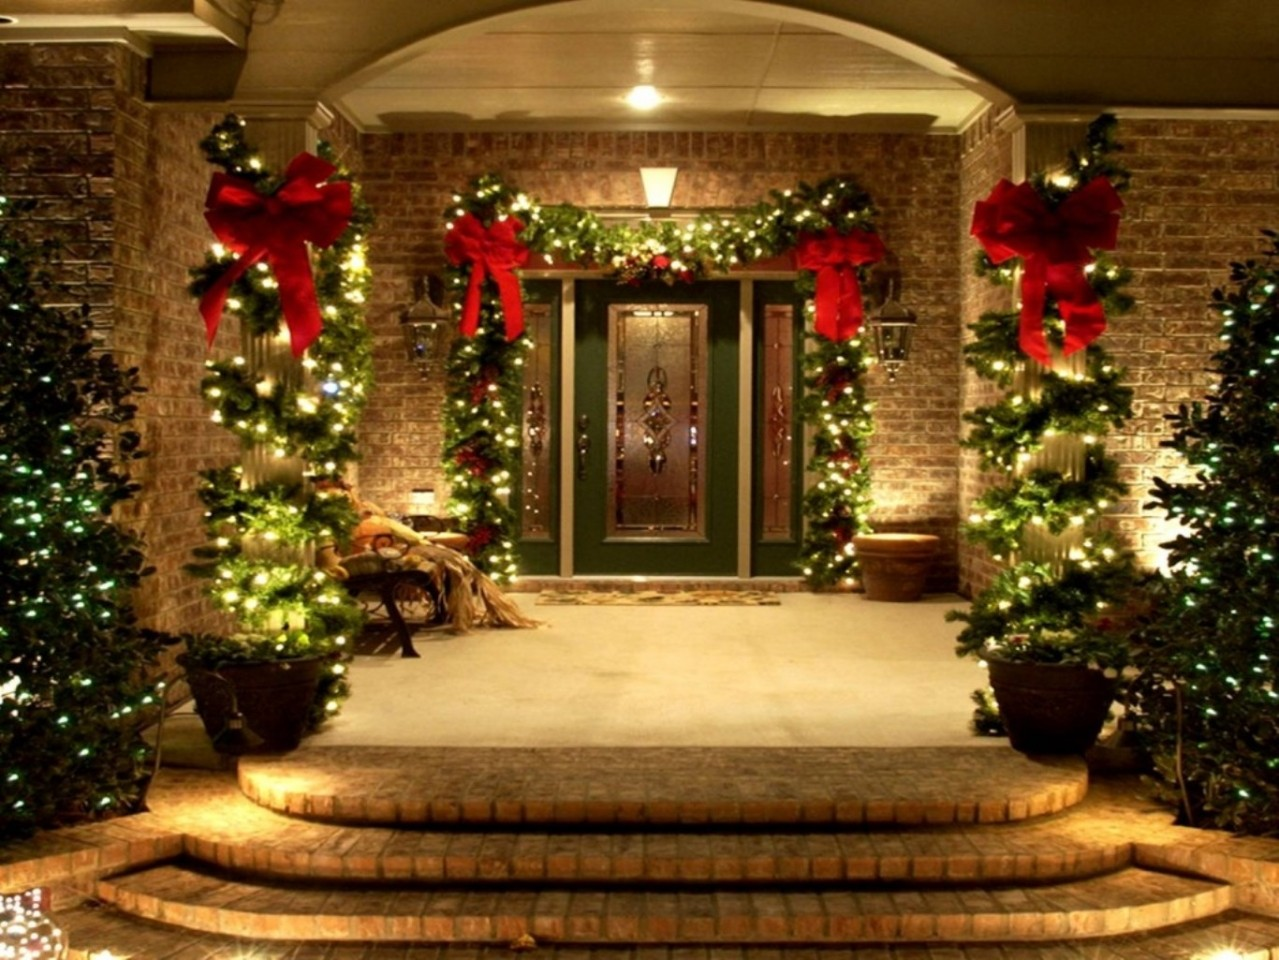 Warm Up the Home with Christmas Lights Year-Round